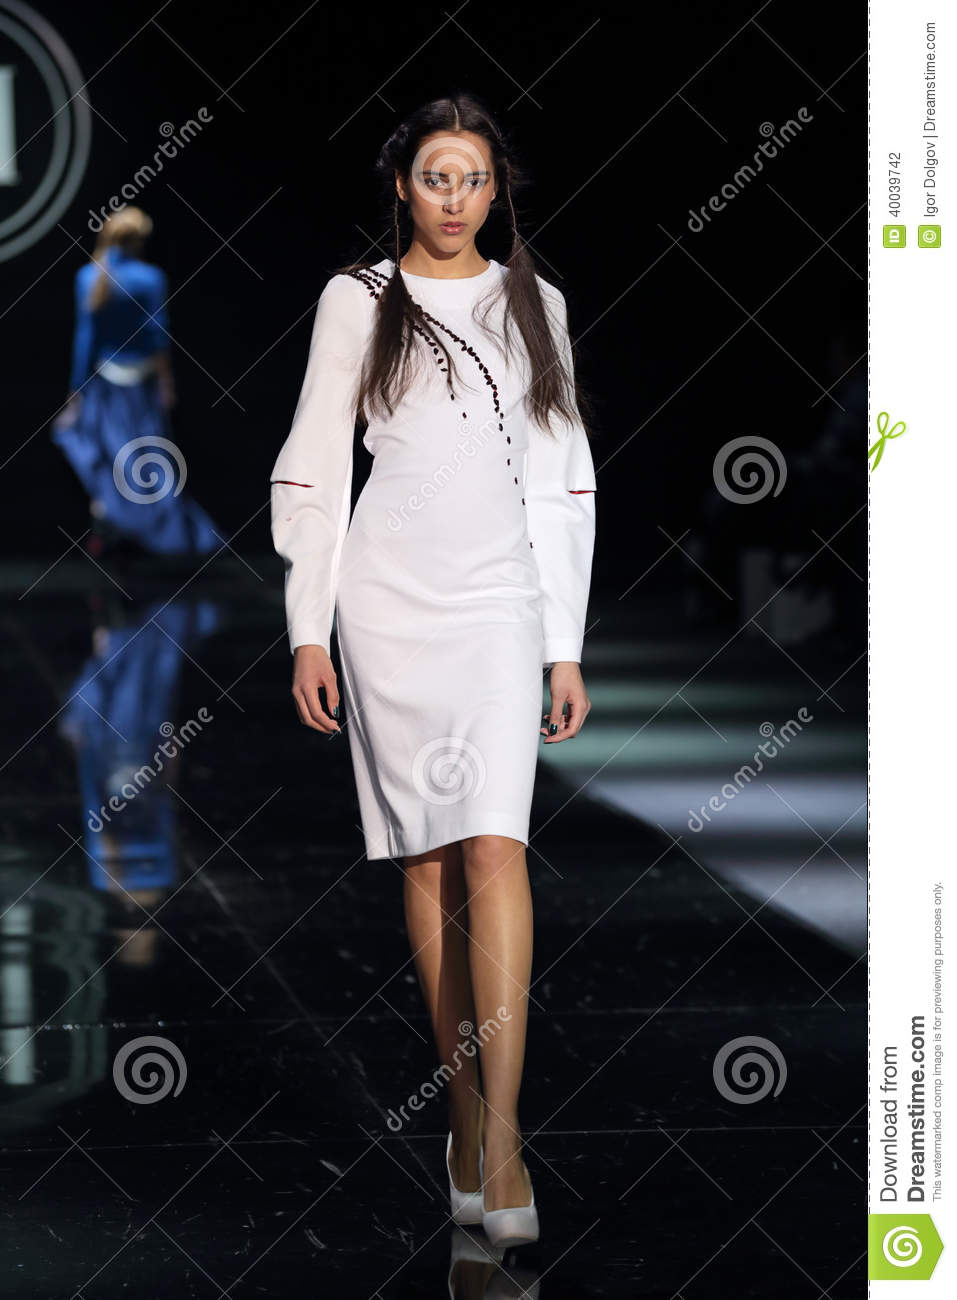 Moscow Fashion Week Editorial Photography Image 40039742